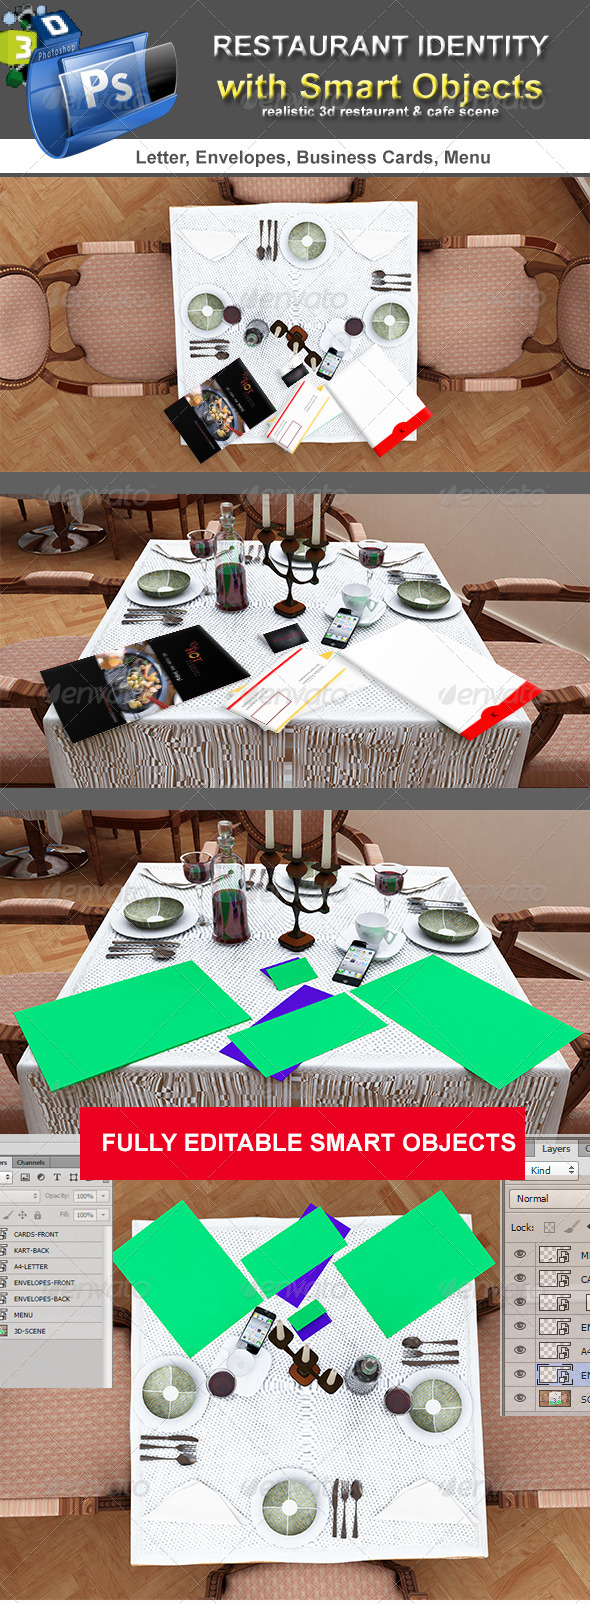 Table Scenes Restorant Identity - Miscellaneous Product Mock-Ups